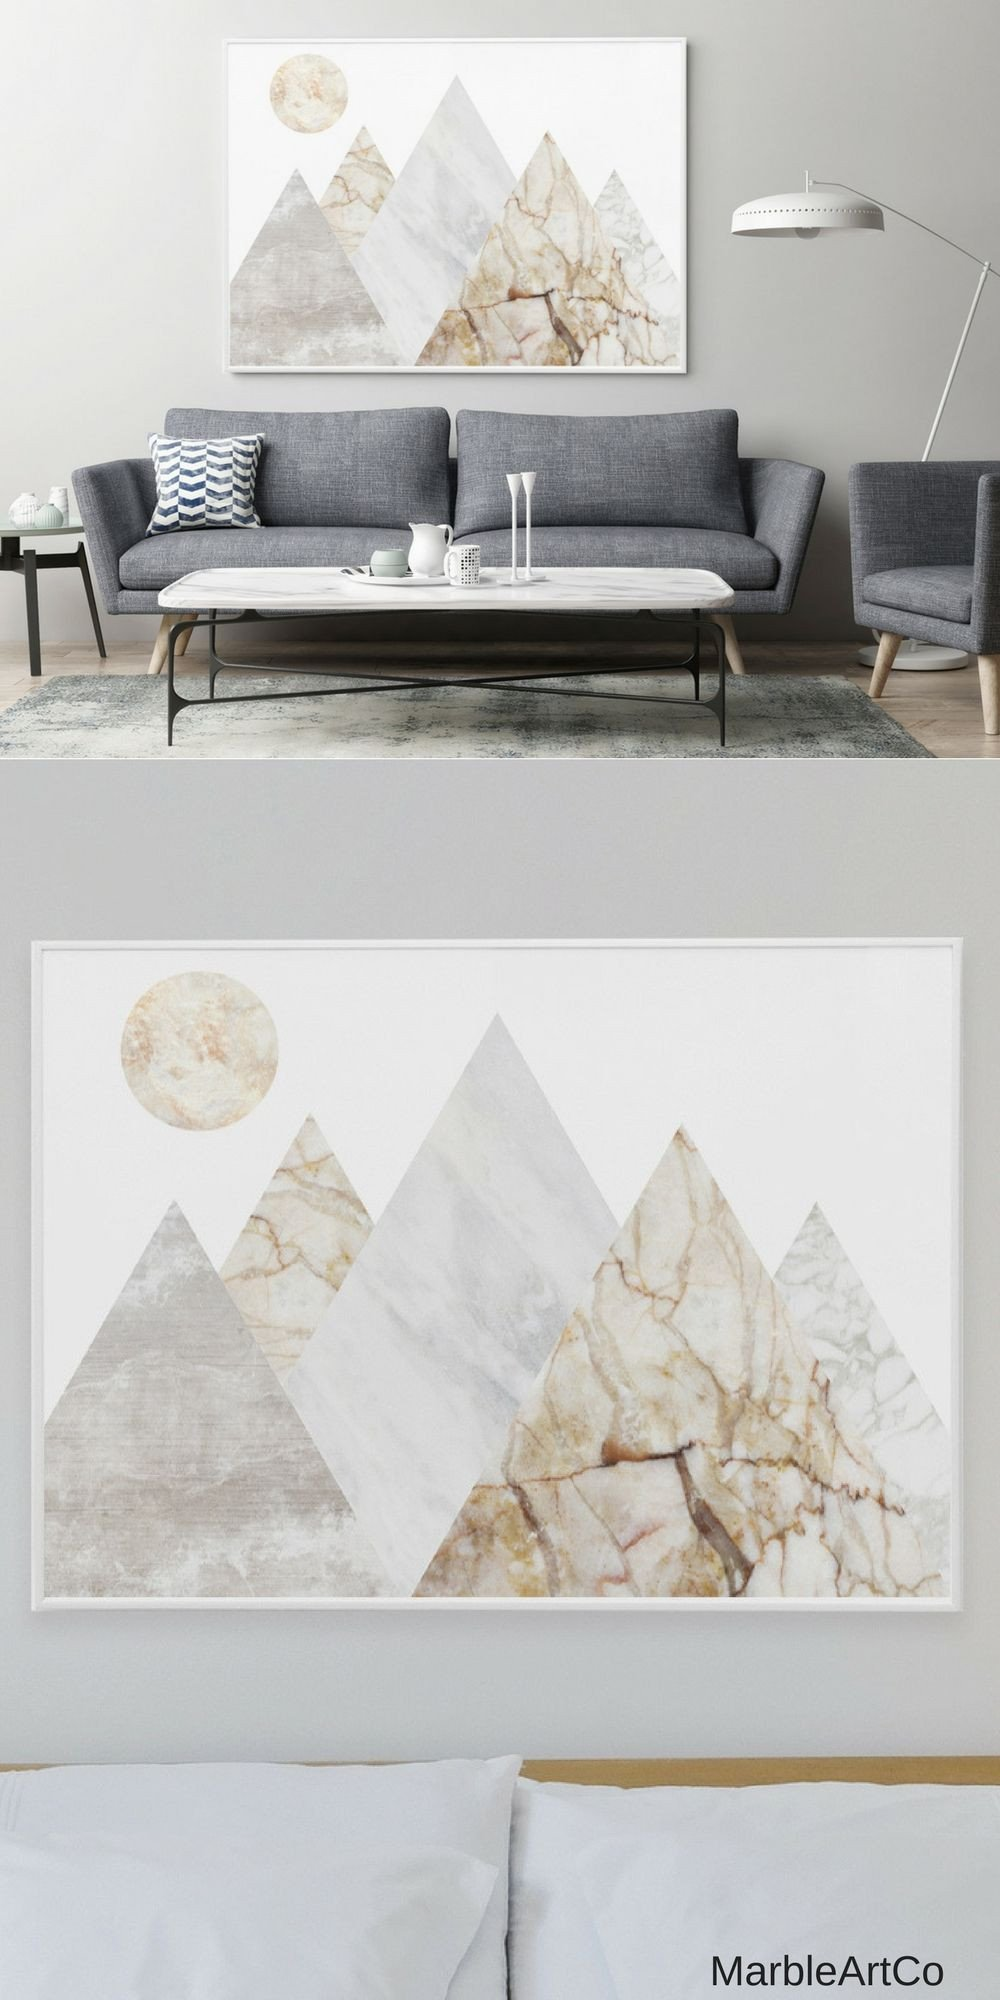 Artwork for Bedroom Walls Luxury Mountains Extra Wall Art Bedroom Decor Nature Framed